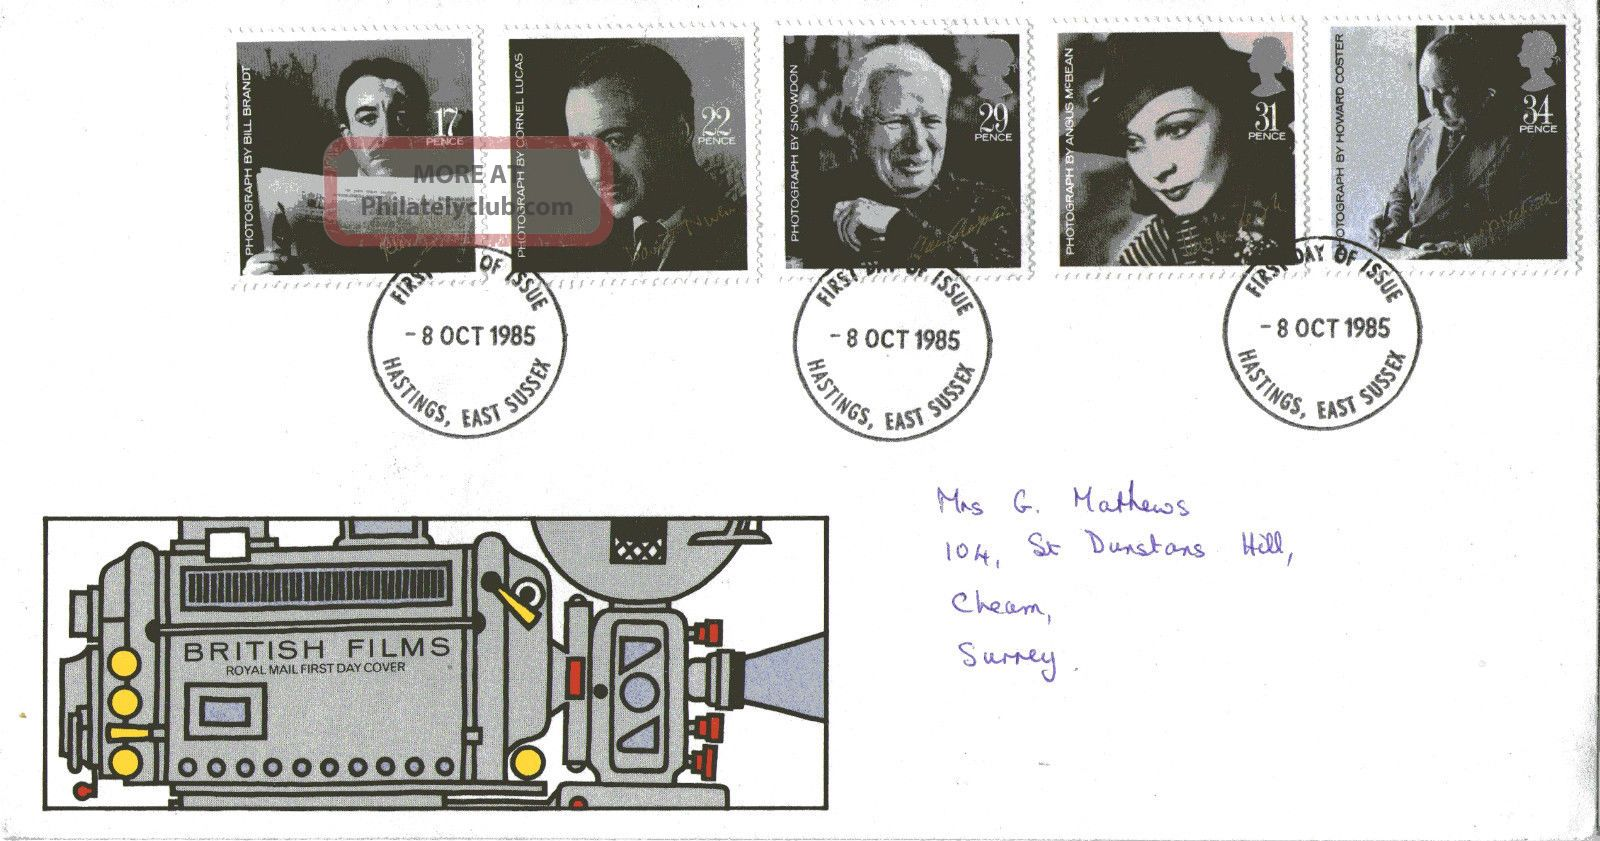 8 October 1985 British Film Year Royal Mail First Day Cover Hastings Sussex Fdi Topical Stamps photo